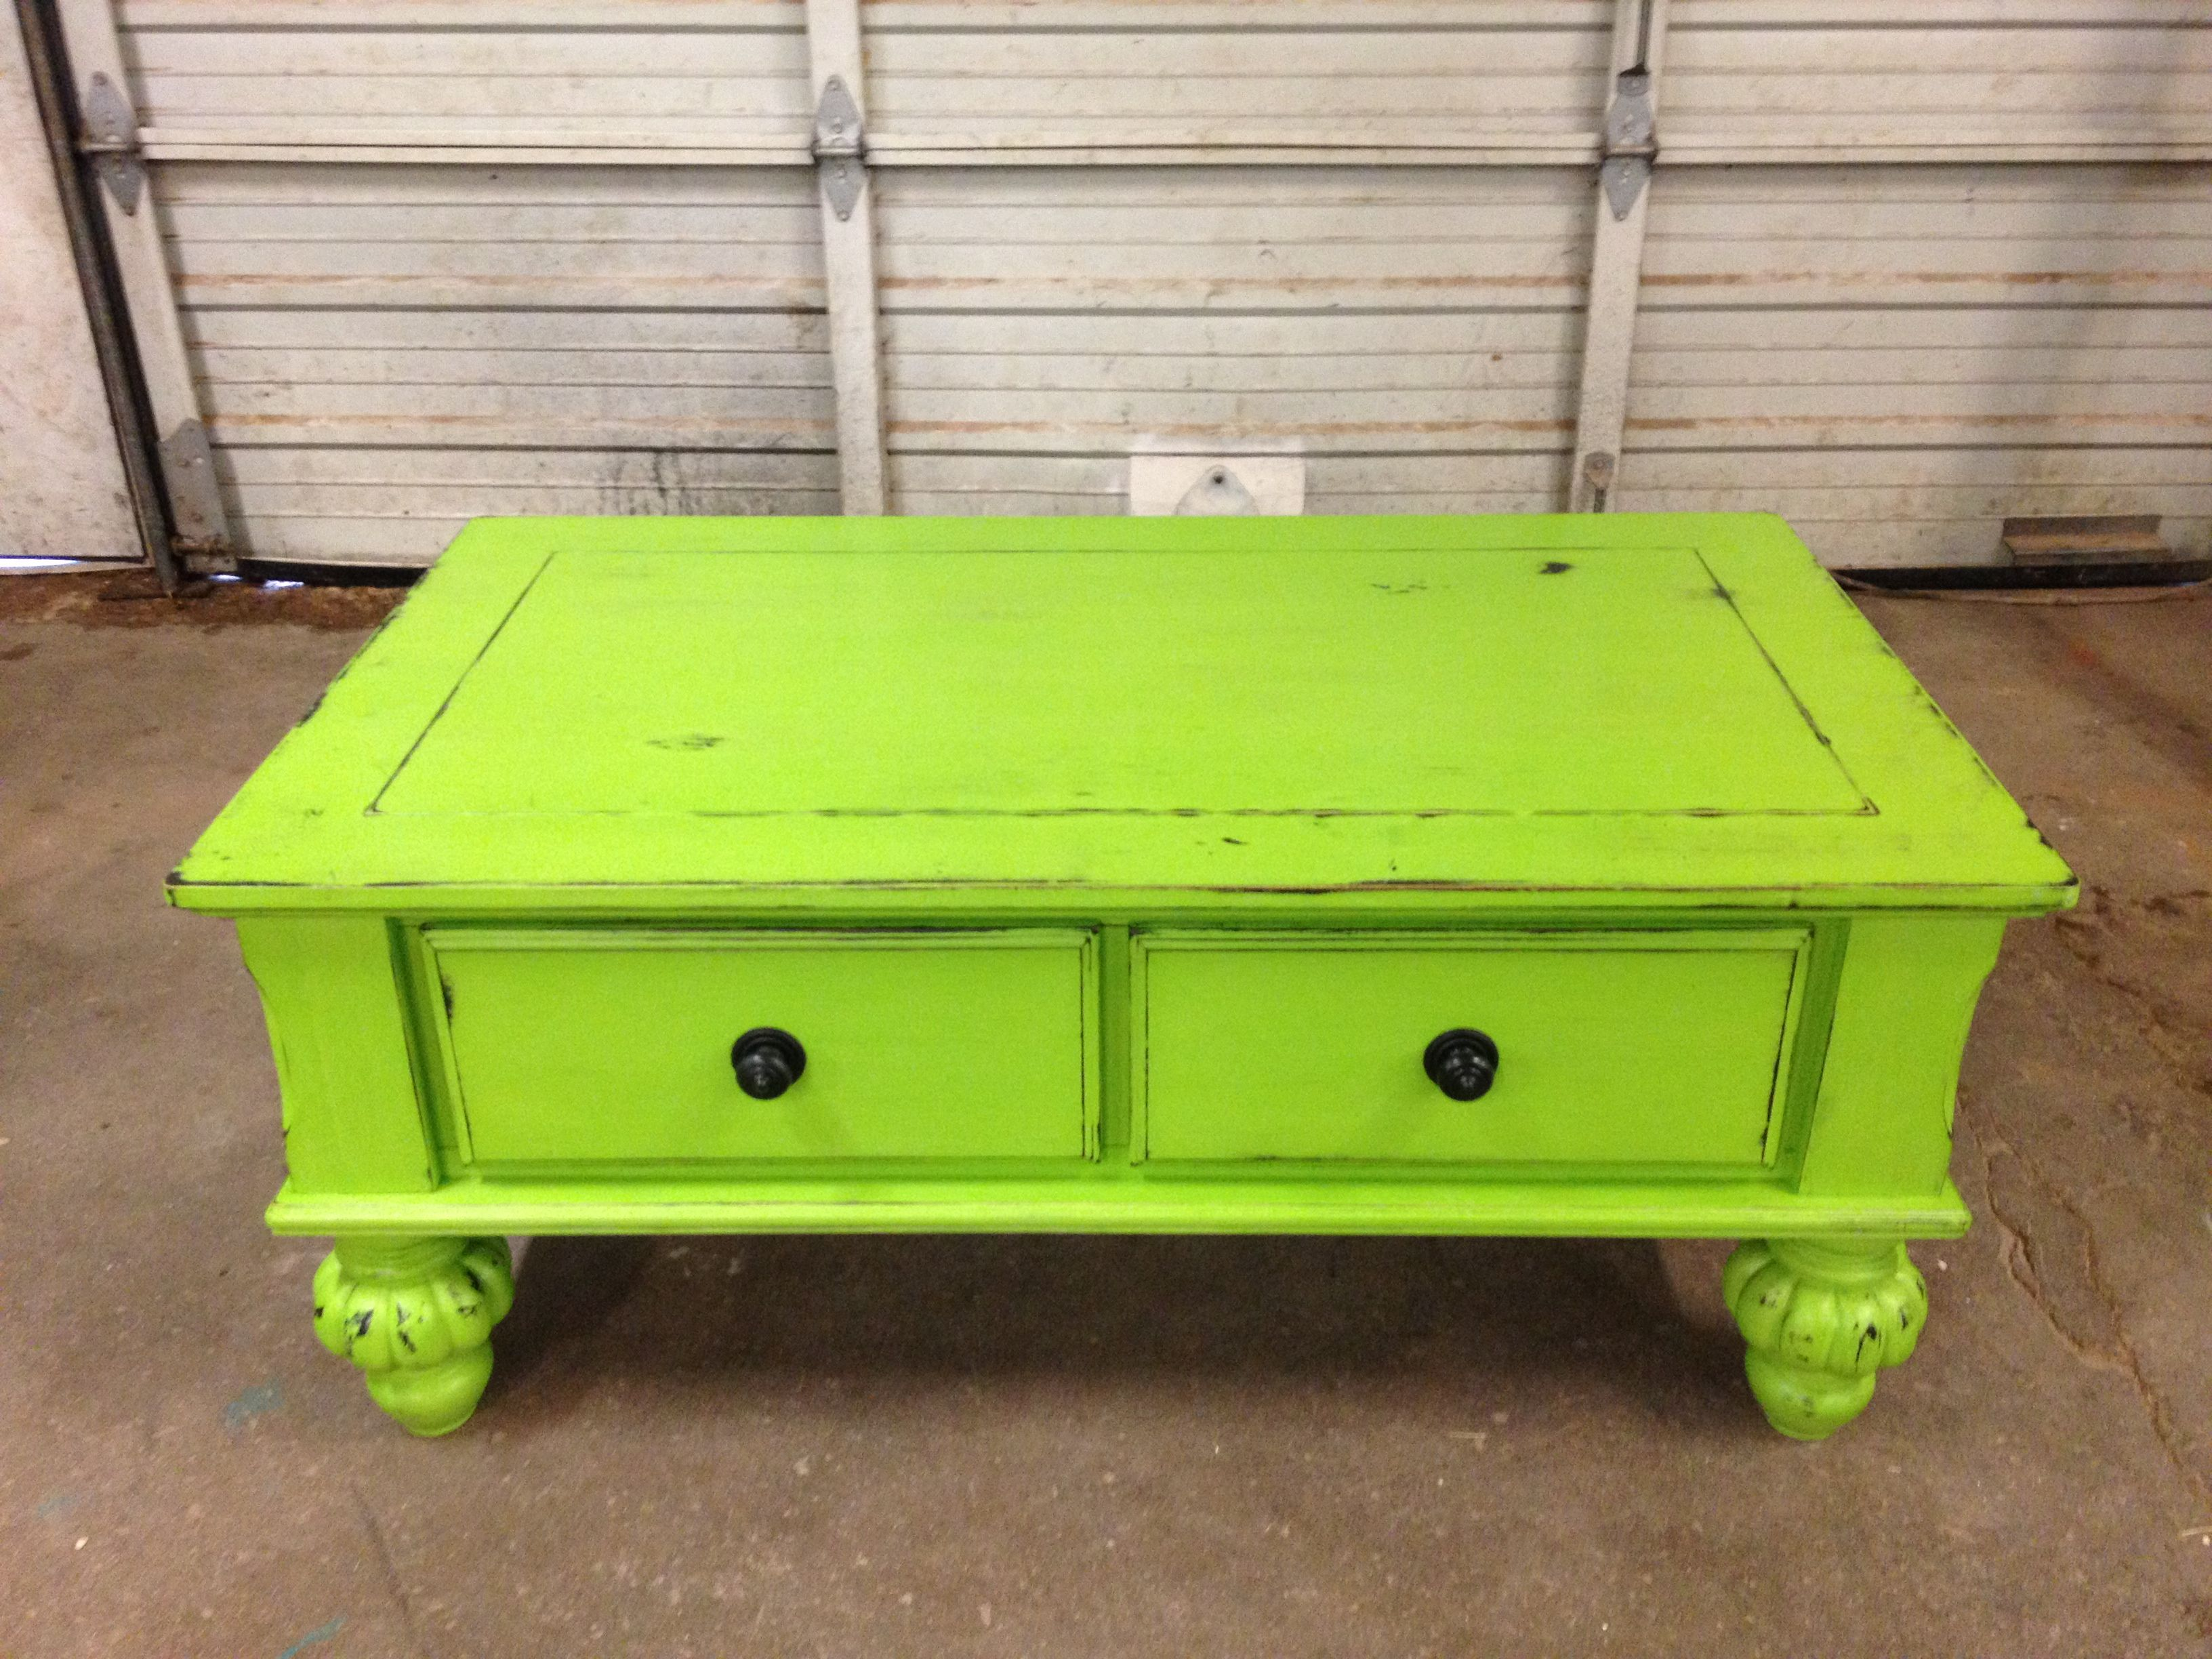 Lime green coffee table americanpaint pany apc oldstore